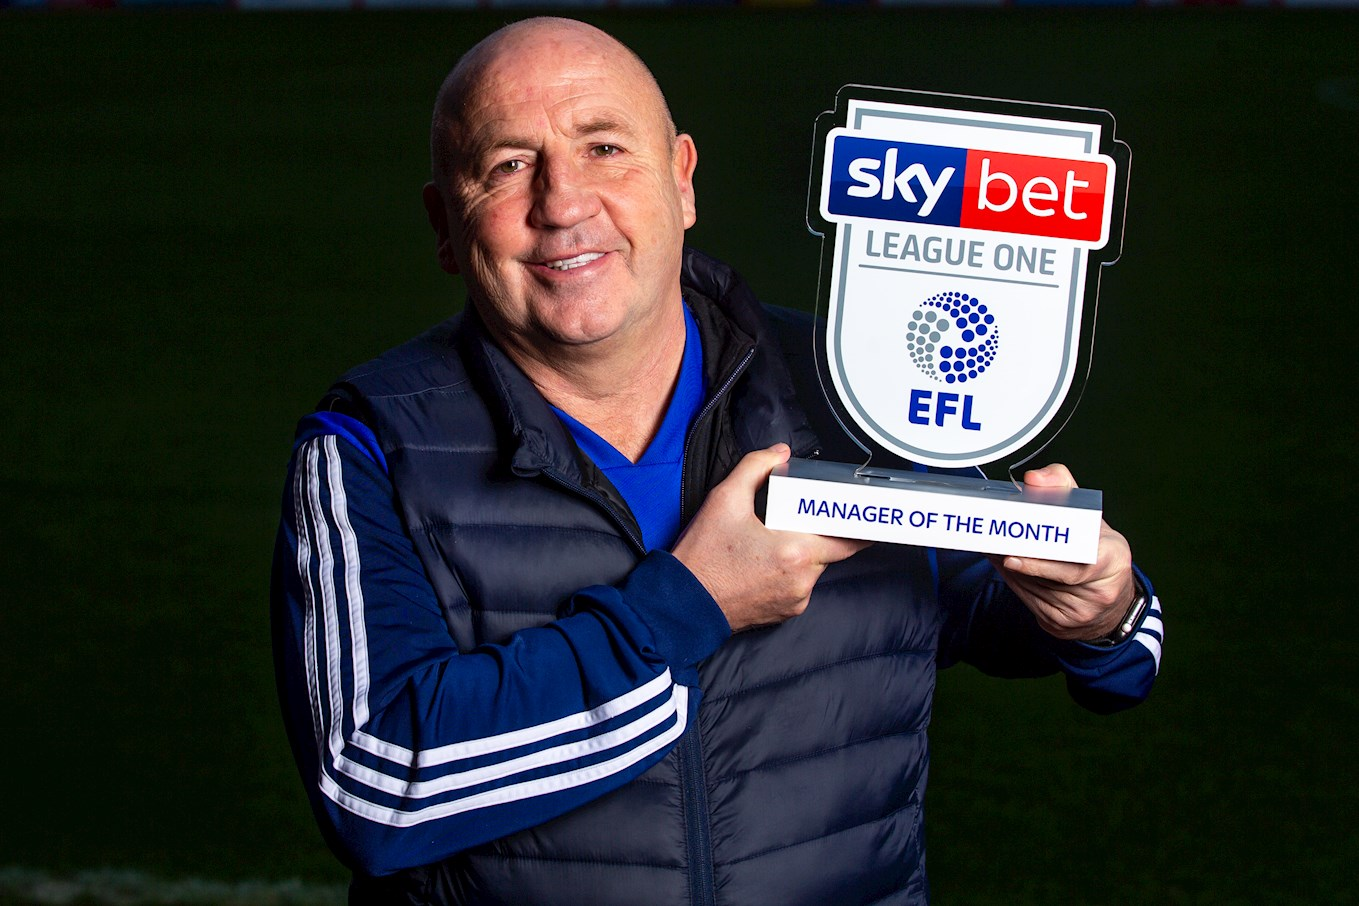 JMP_Sky_Bet_League_One_Manager_of_the_Month_Dec19_RS_002.JPG